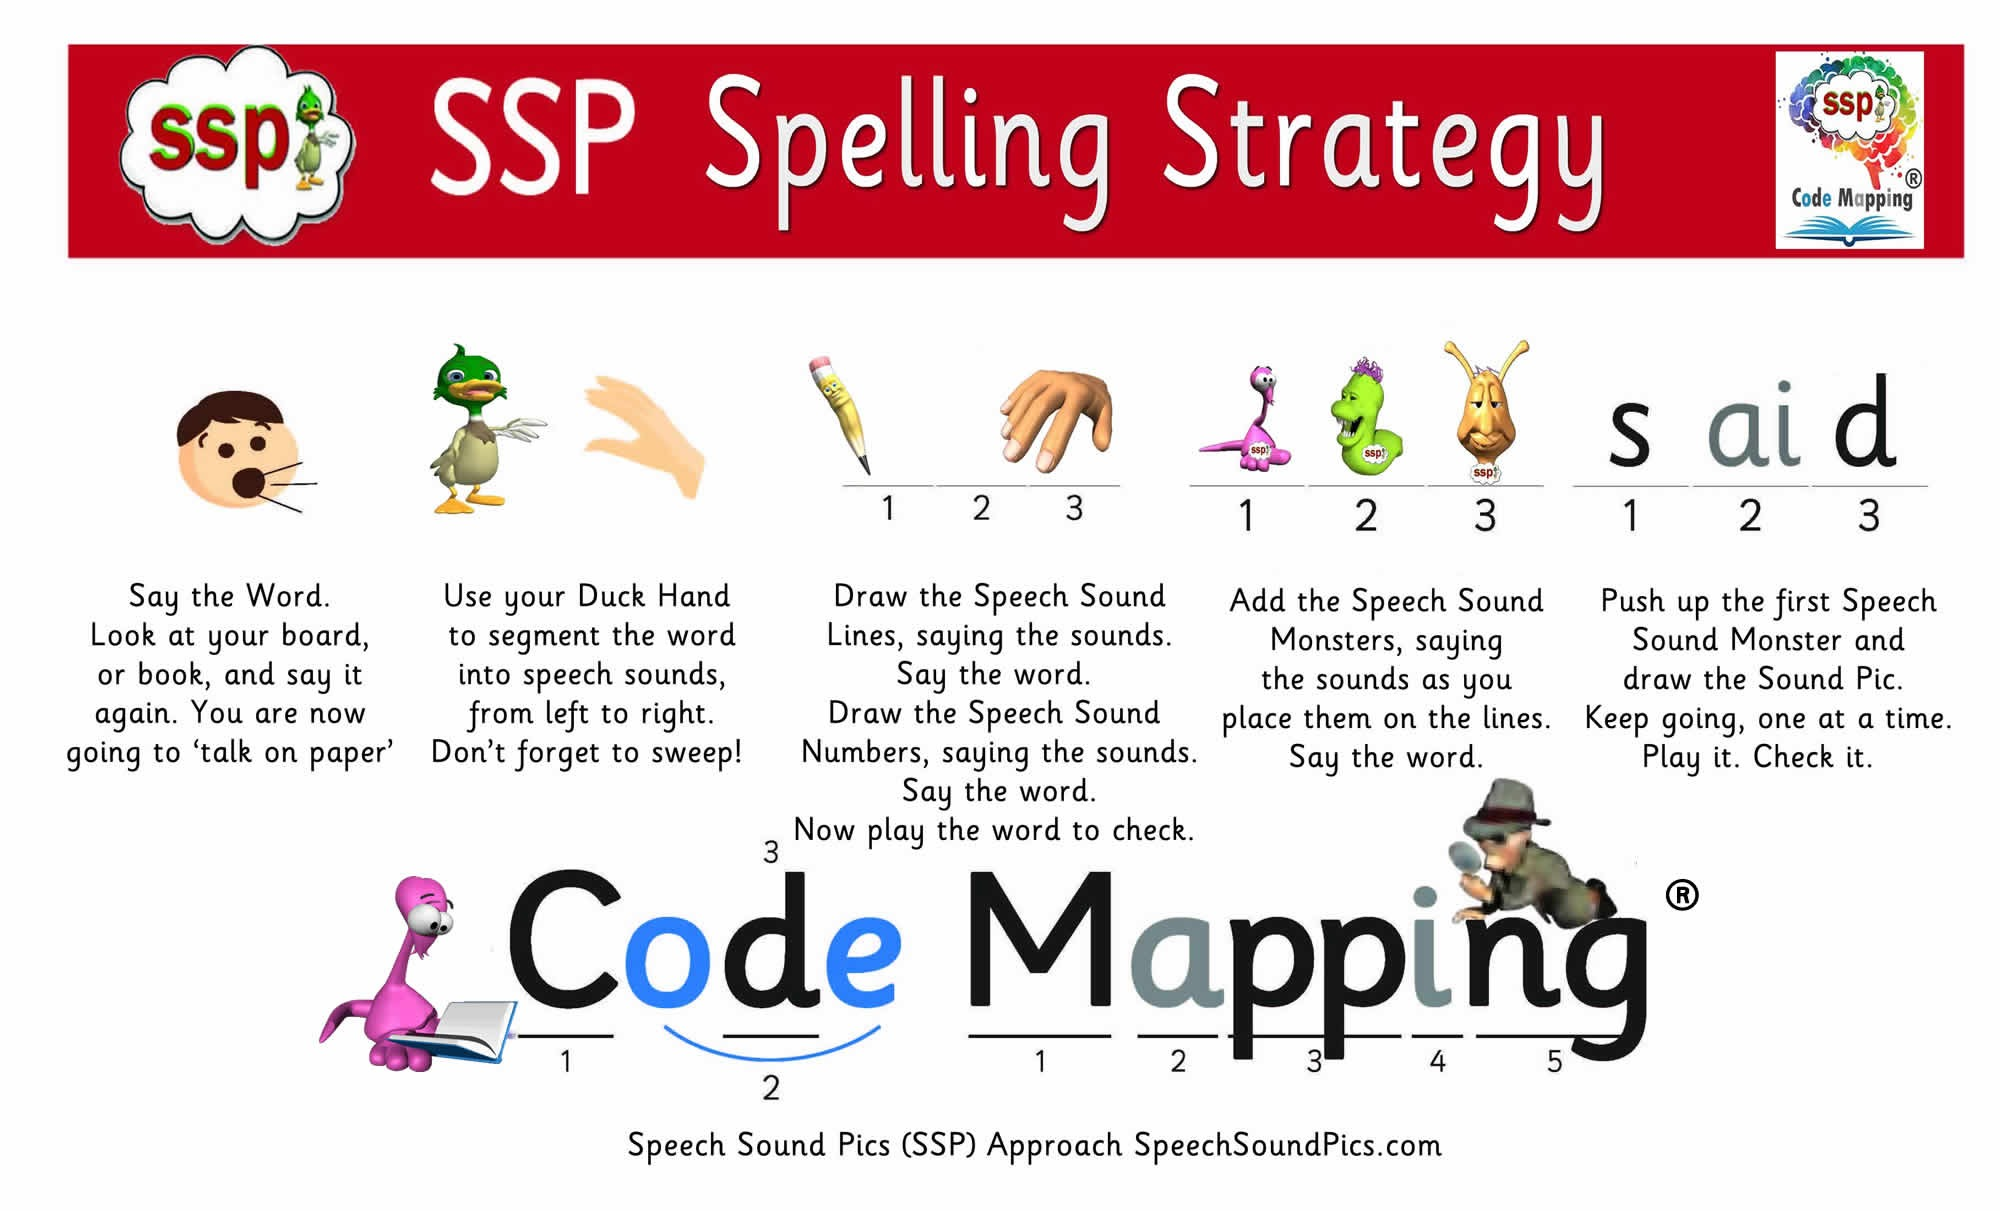 All About SSP Monster Mapping®! Download, print and laminate these free pdfs